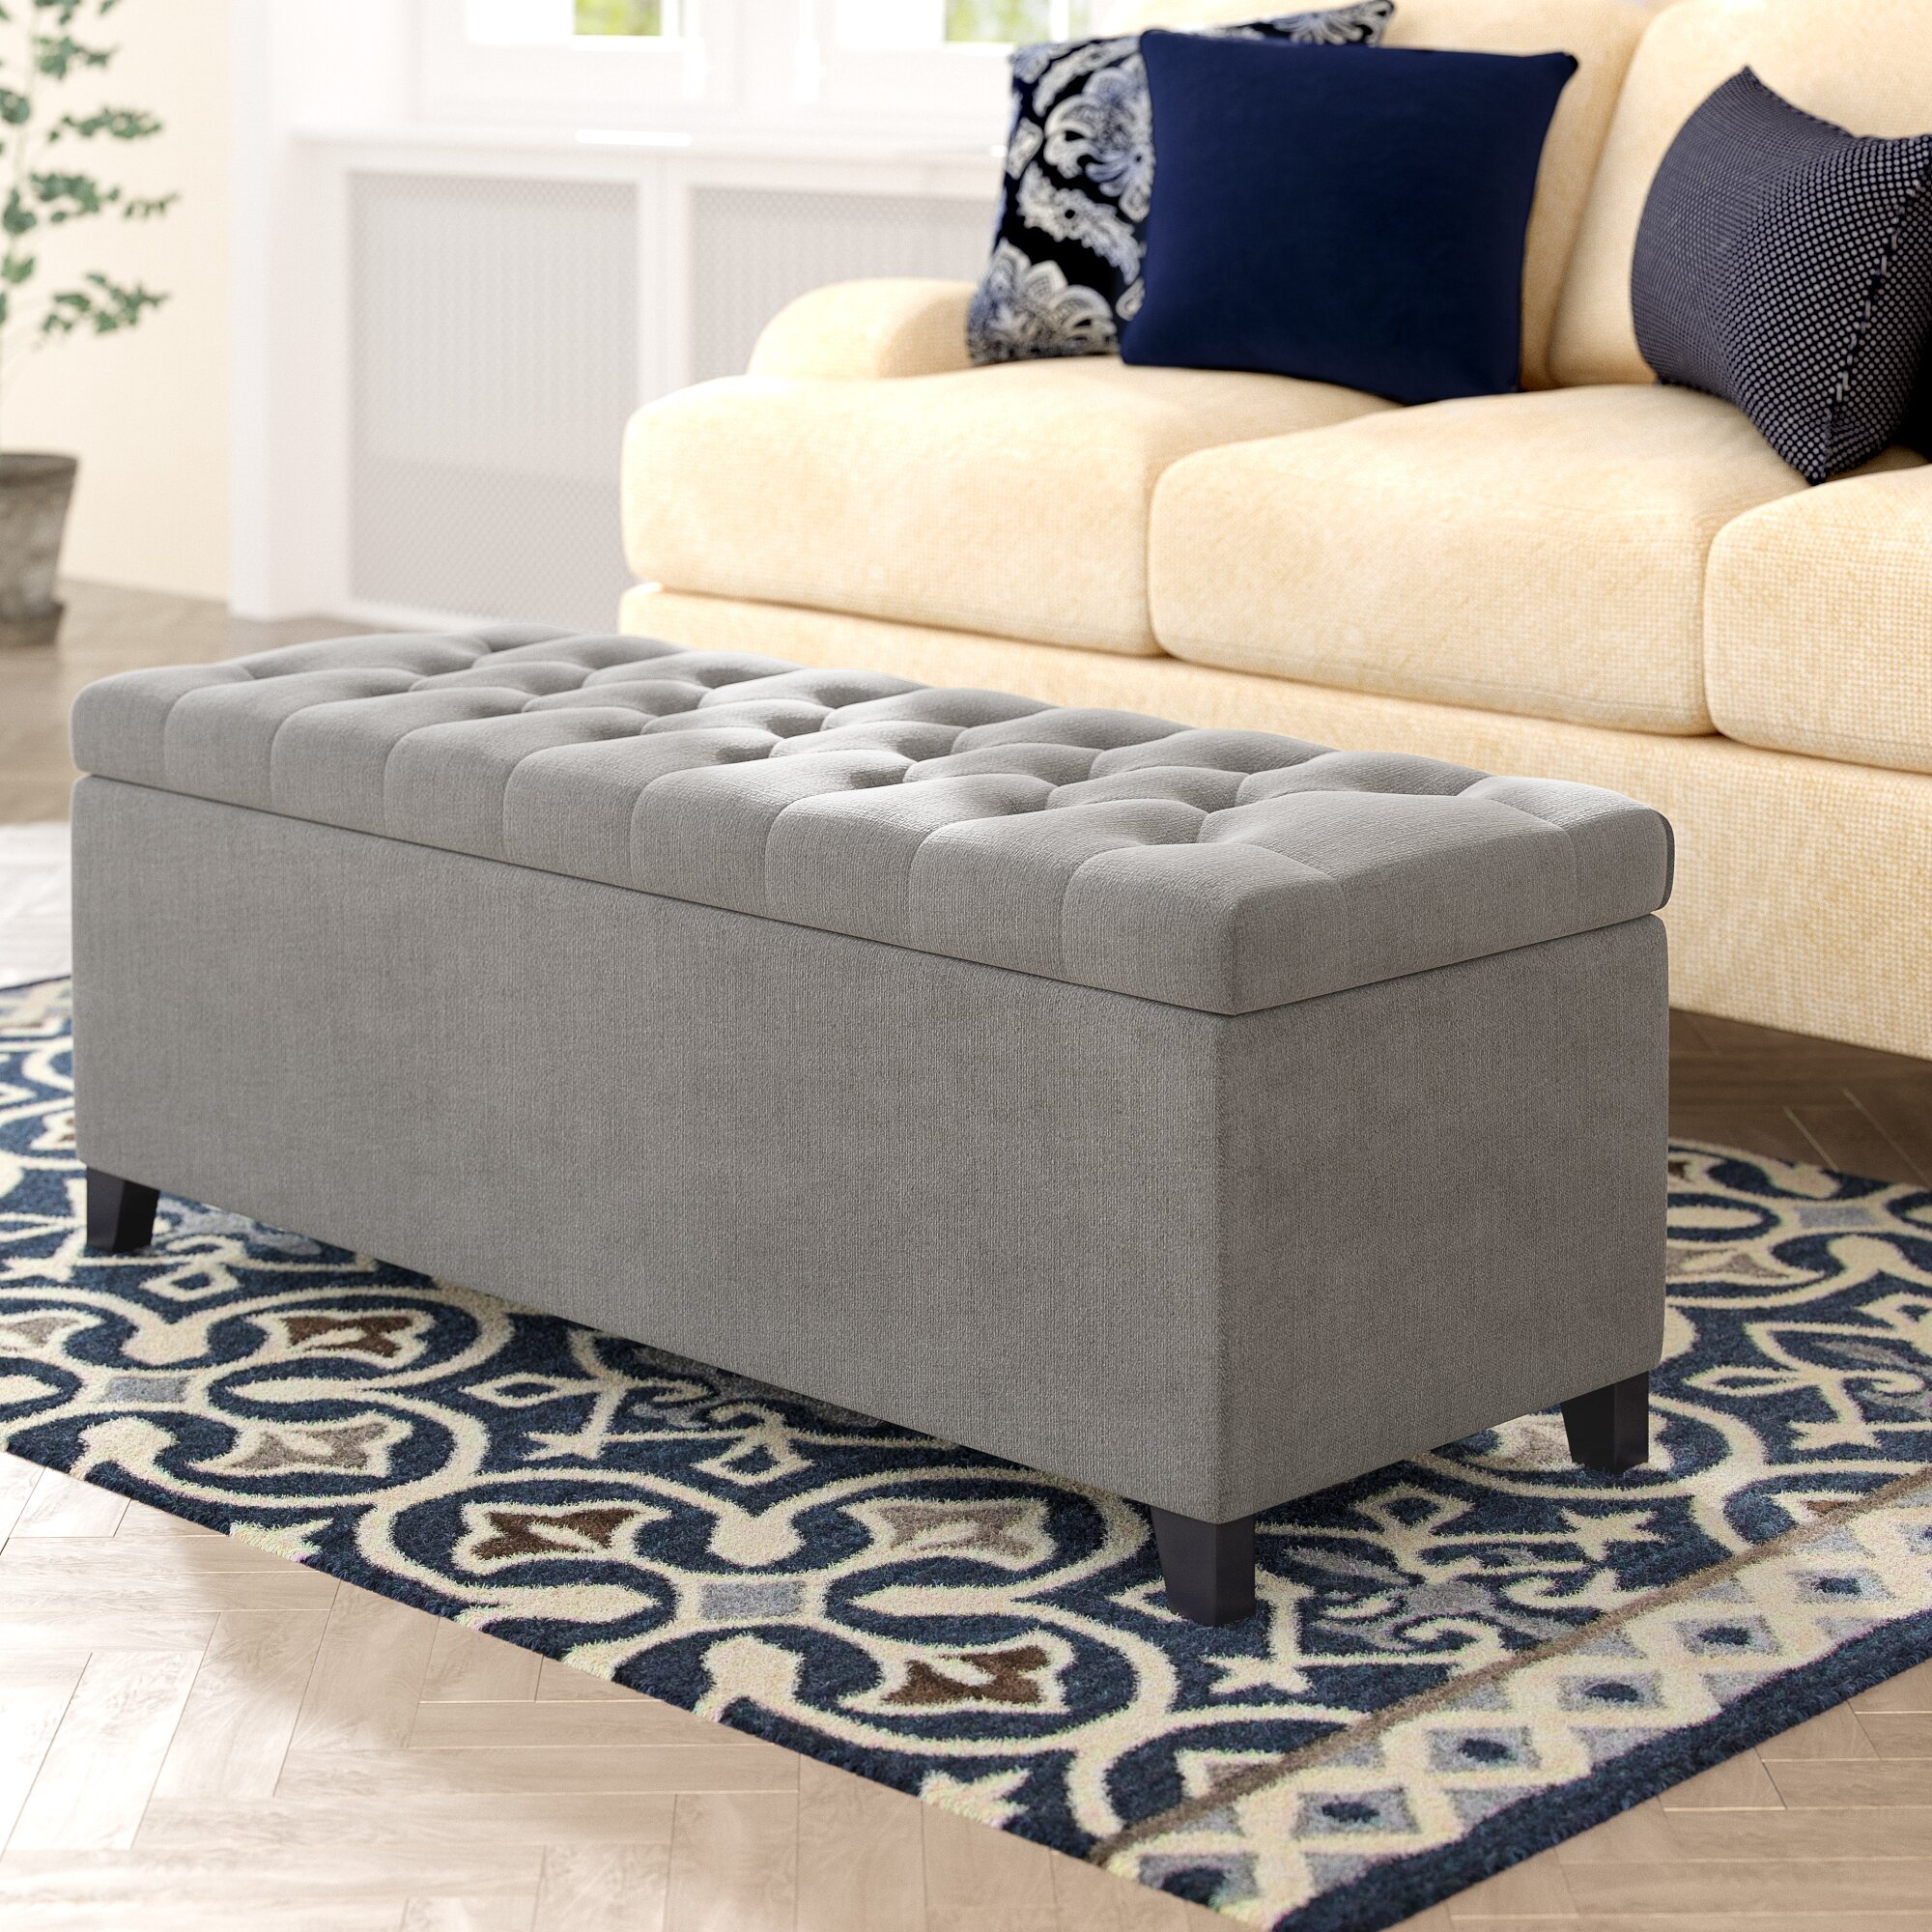 Place an Ottoman In Front of Your Couch